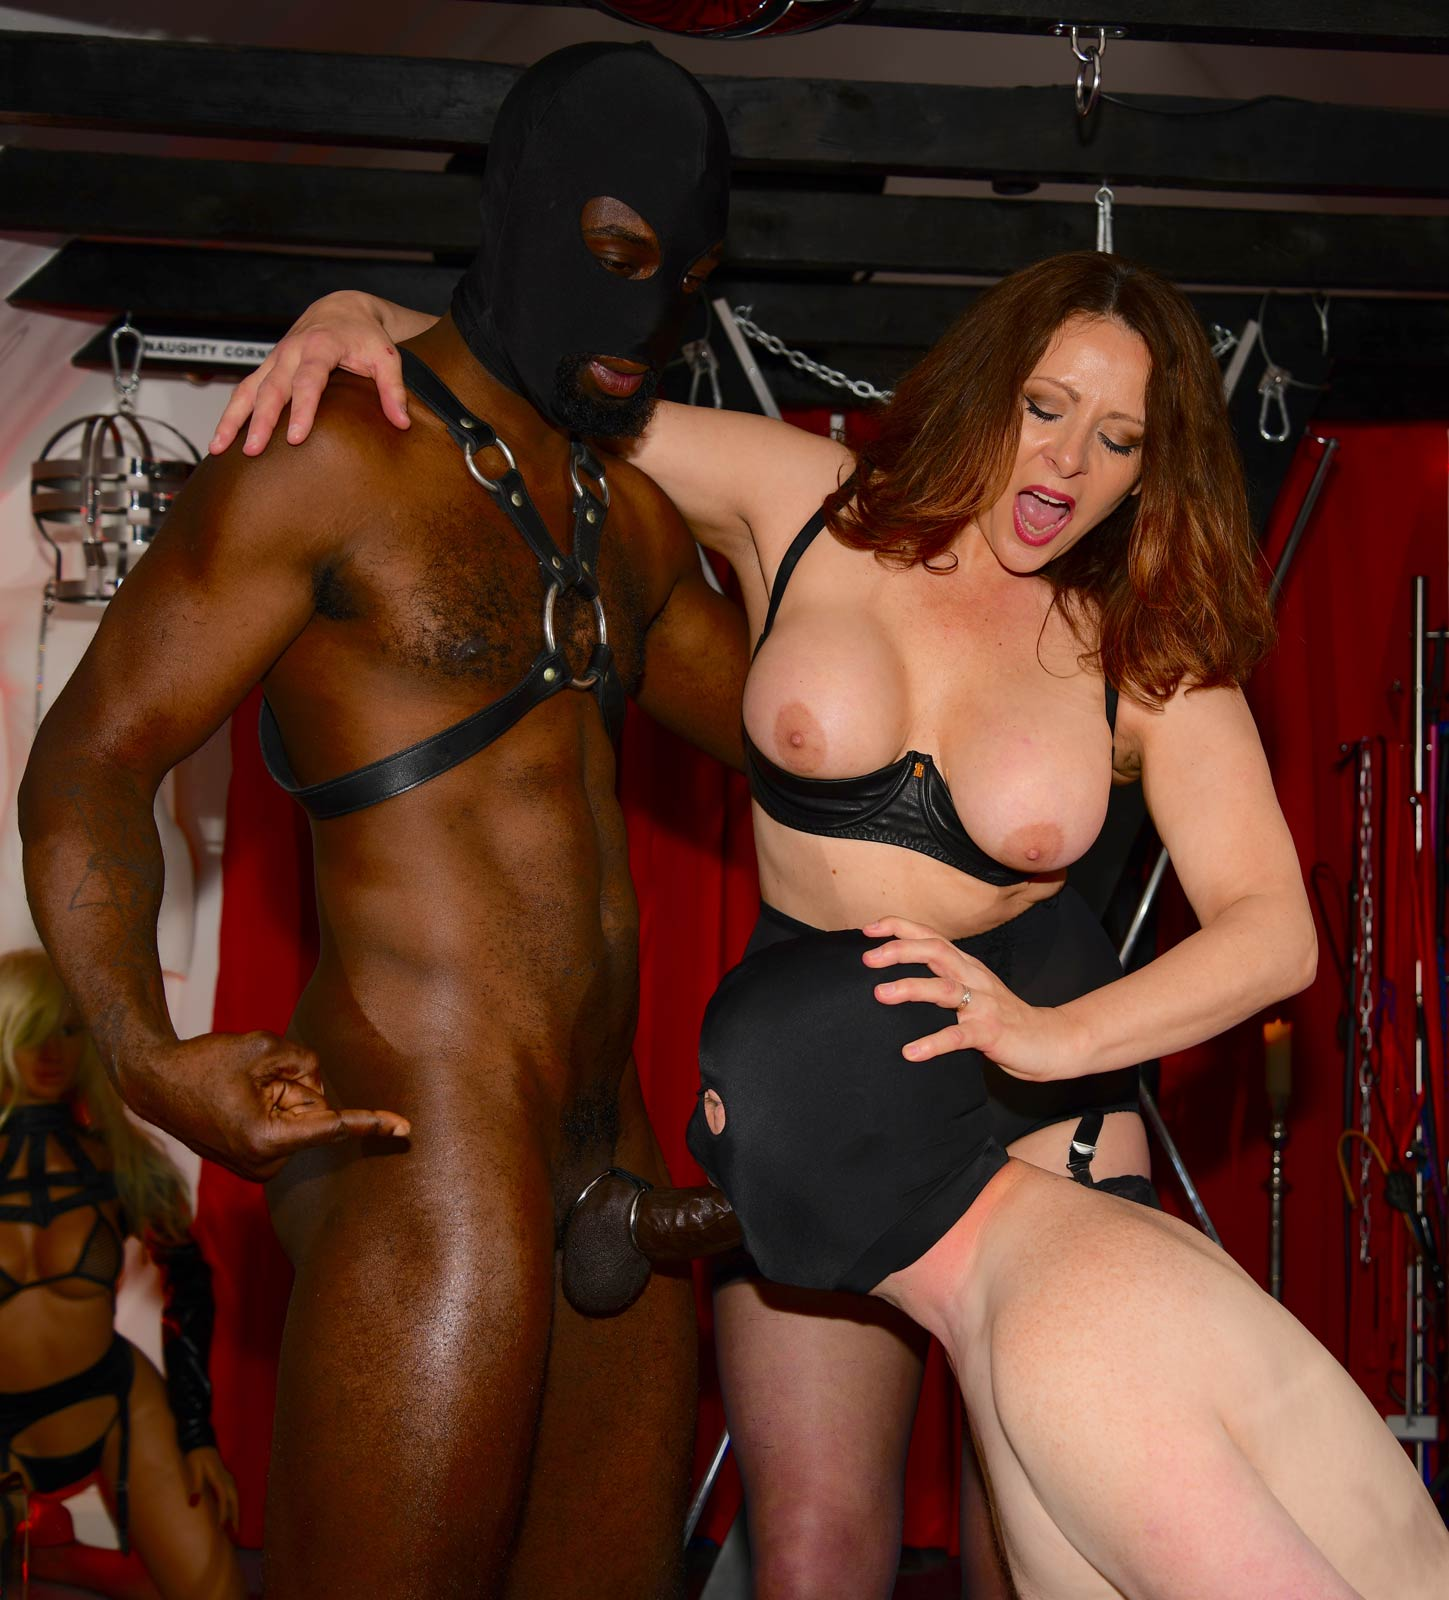 Become a Cuckold or be forced into bi-sexual acts with Mistress Carly